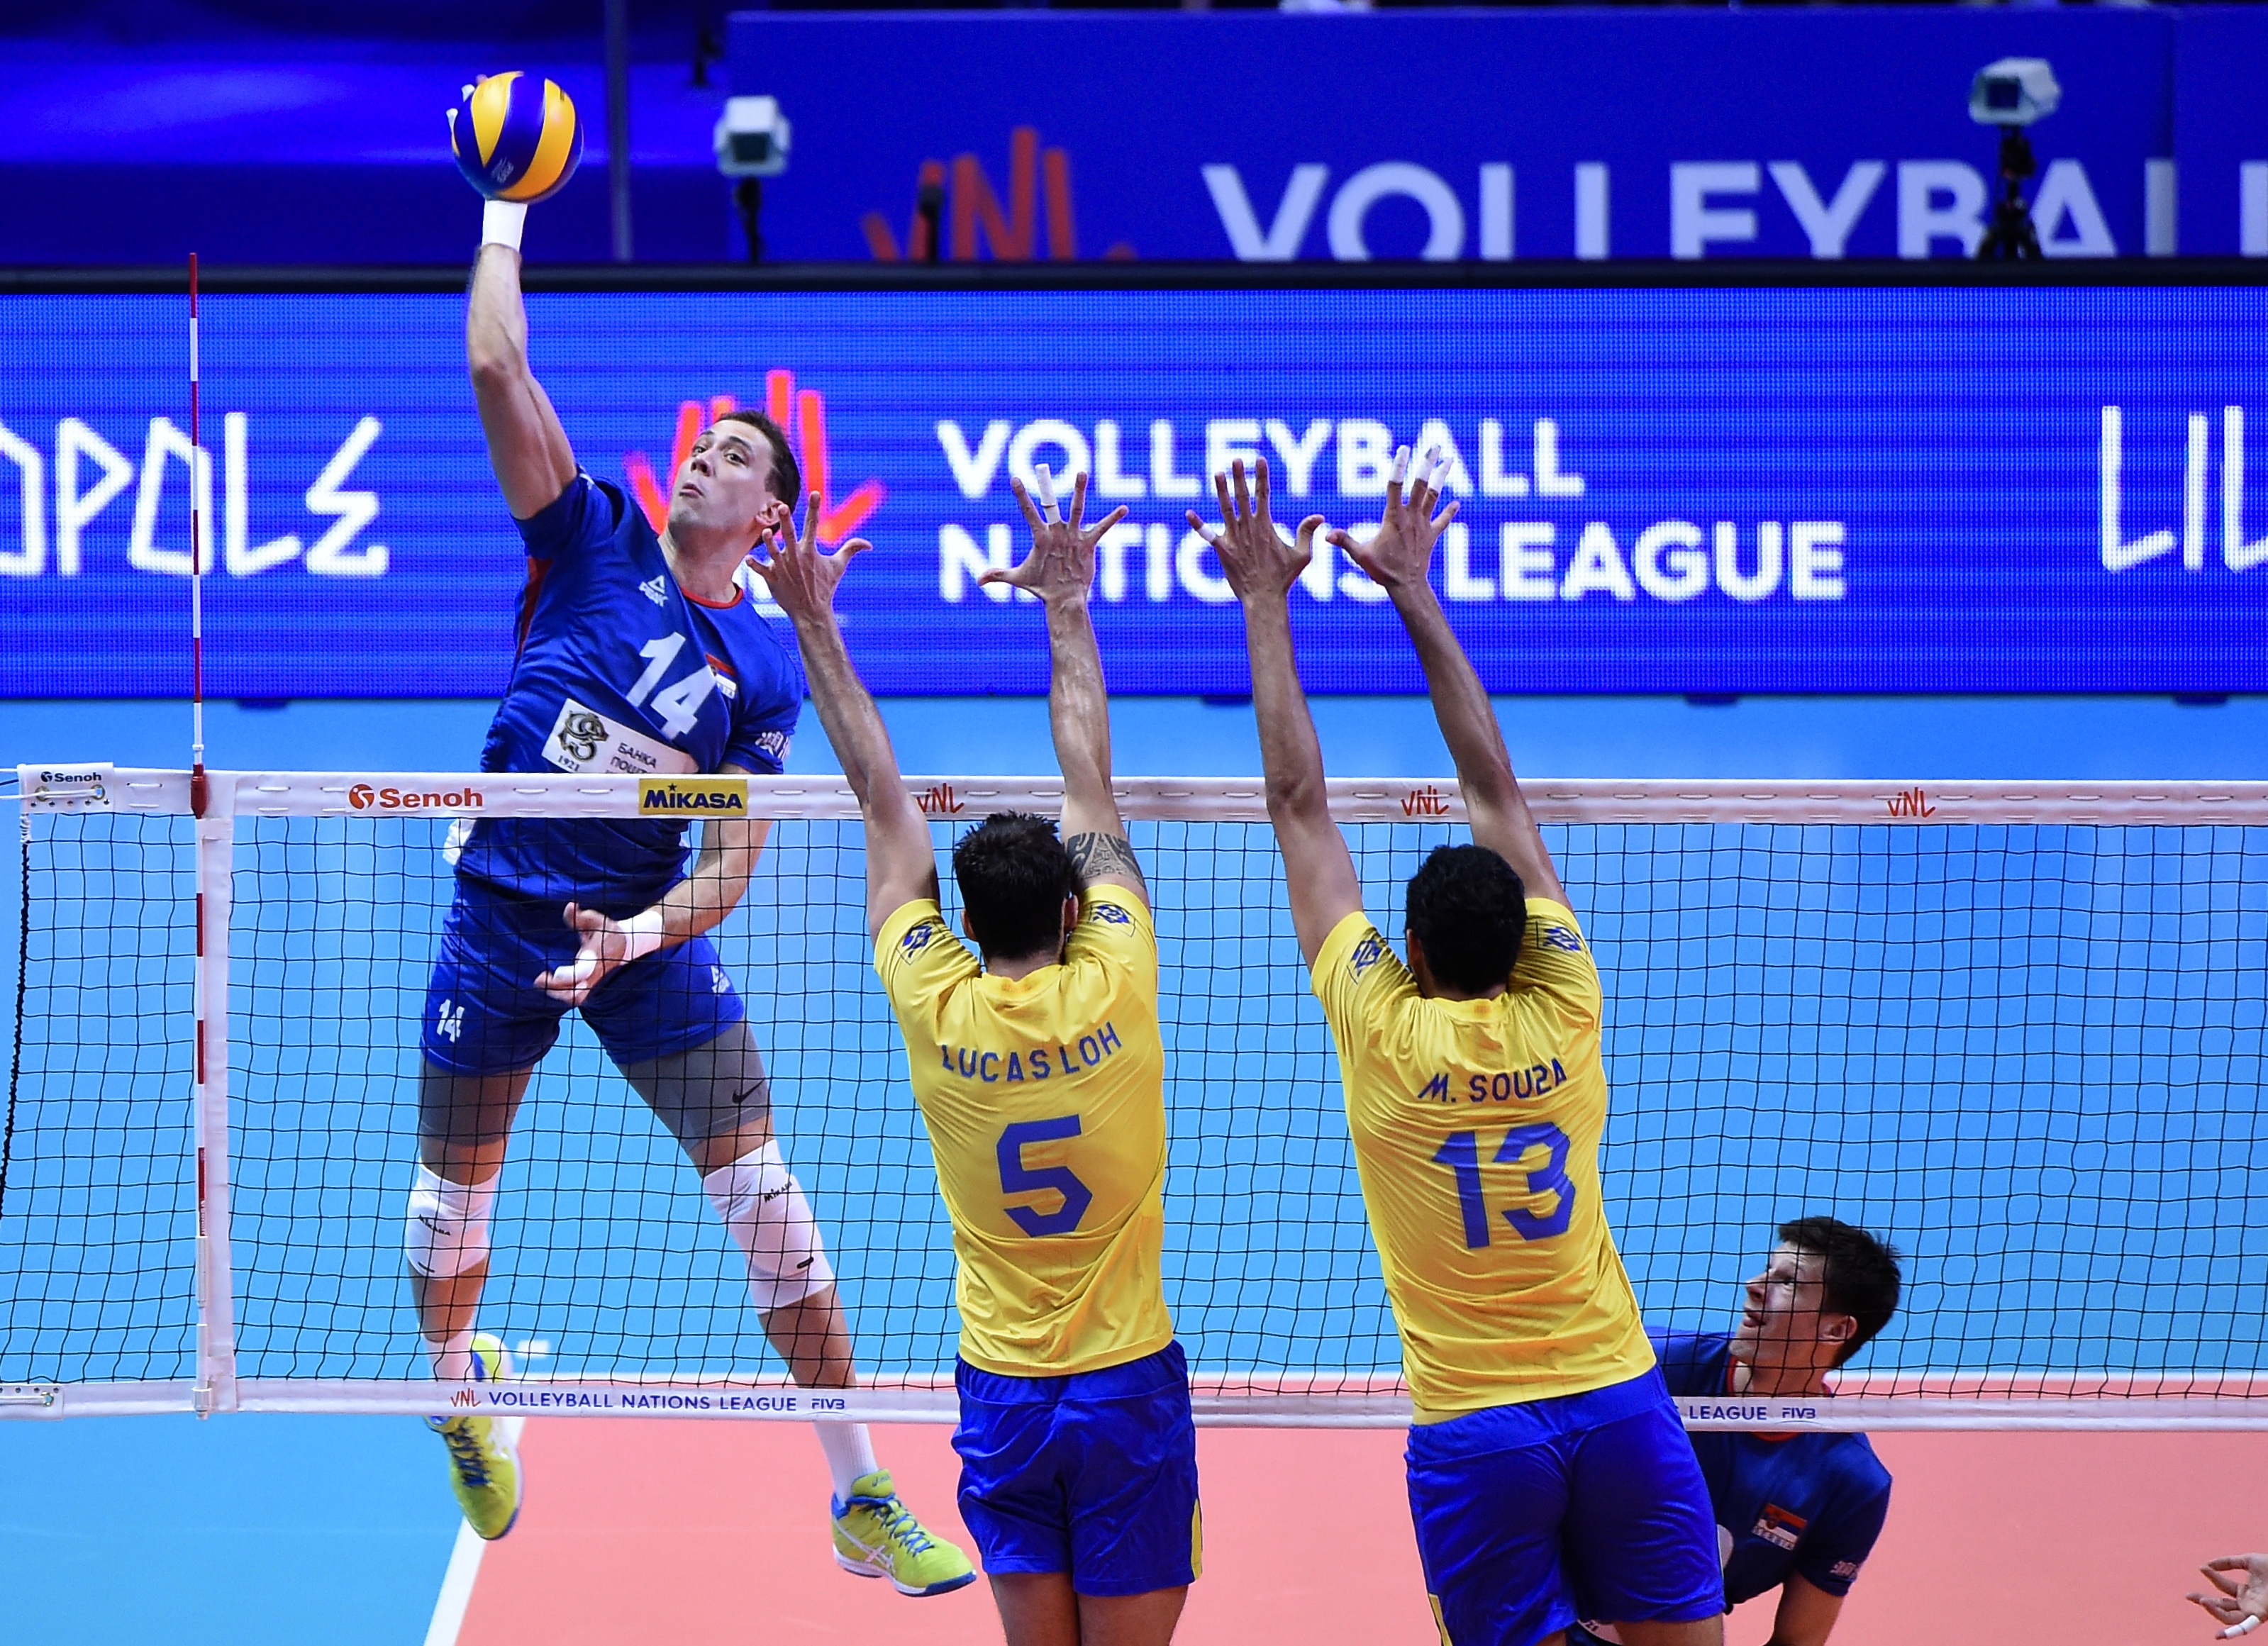 Fivb Men S Volleyball Nations League News Detail Finals Serbia Set Foundation For Vnl Campaign Fivb Volleyball Nations League 2019